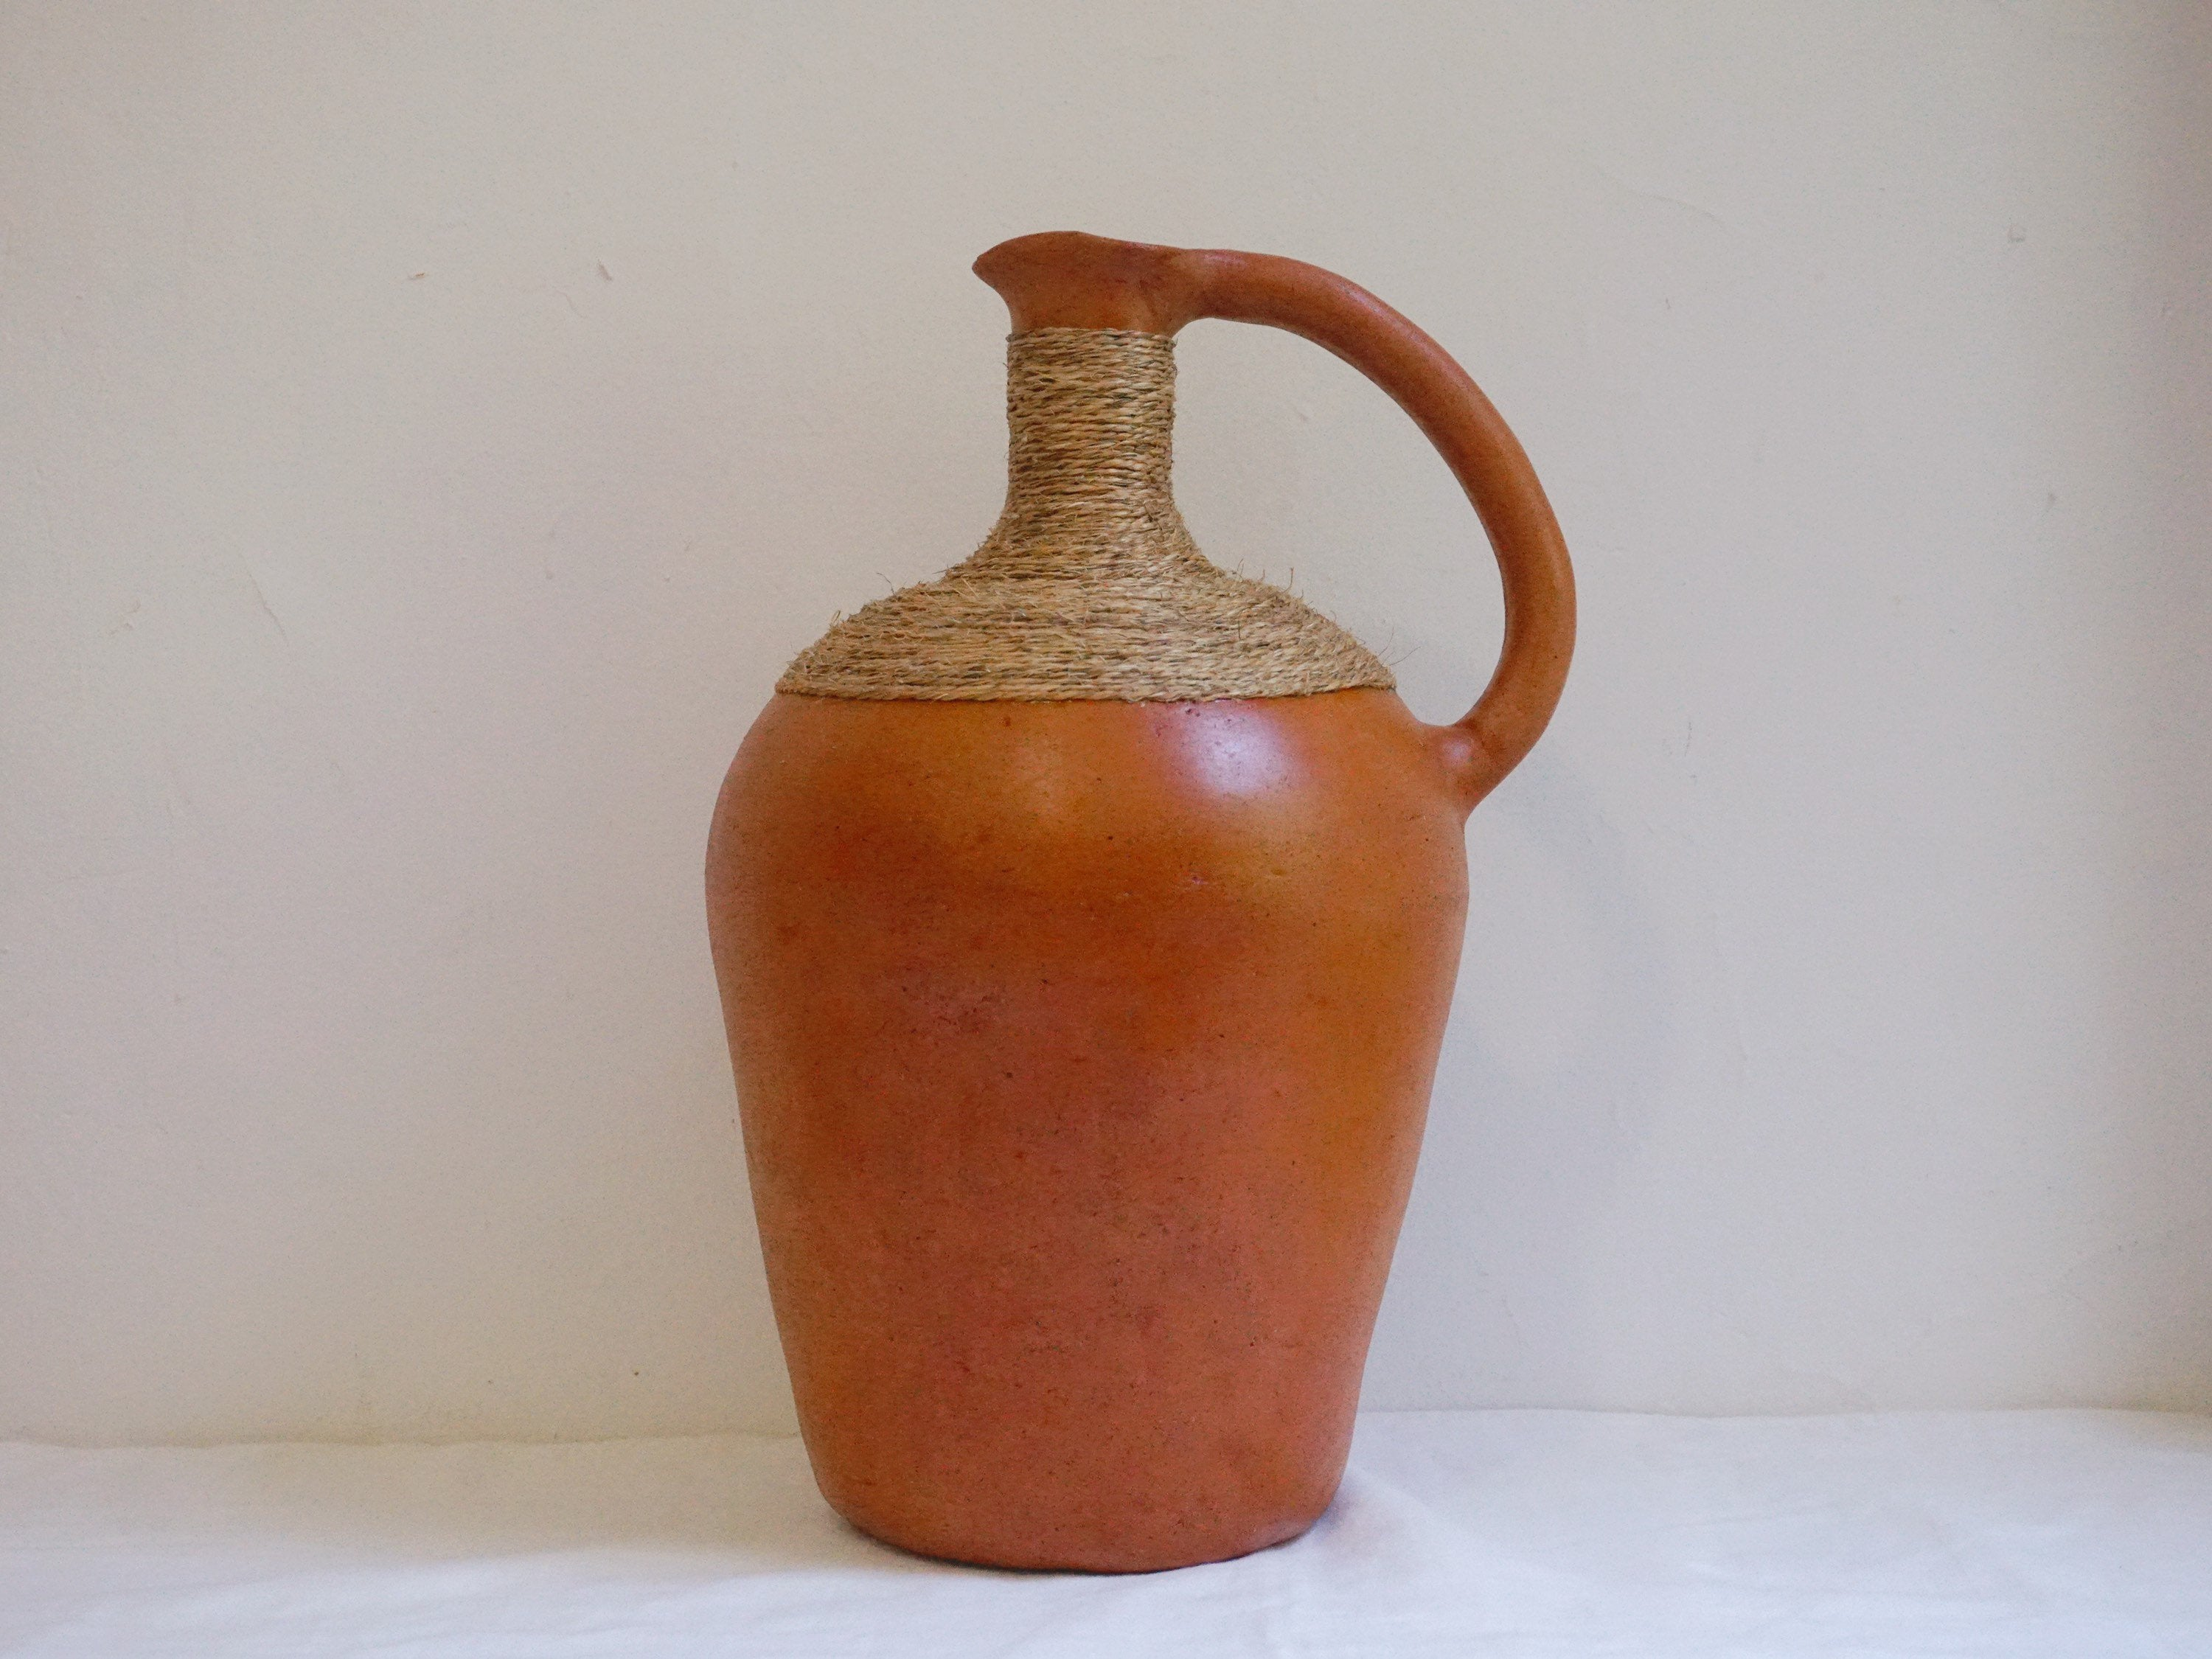 Vintage Hand Made African Clay Water Jug with Straw Wrapping and Handle | Tribal Vase Home Decor - Urban Nomad NYC